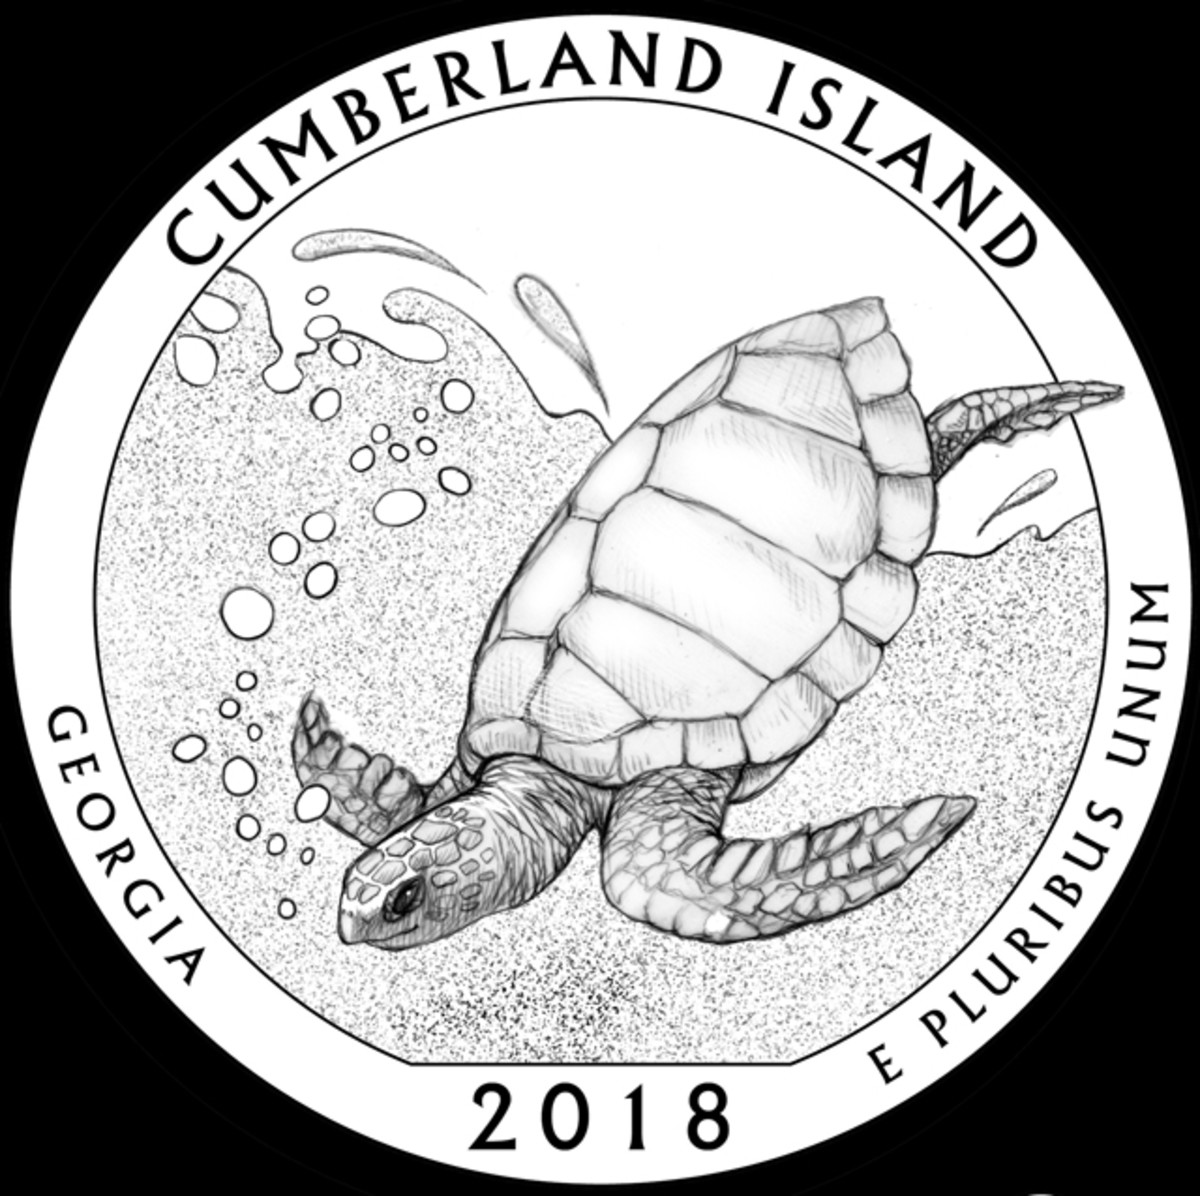 A turtle is the central feature of GA-03, the CCAC approved Cumberland Island quarter.